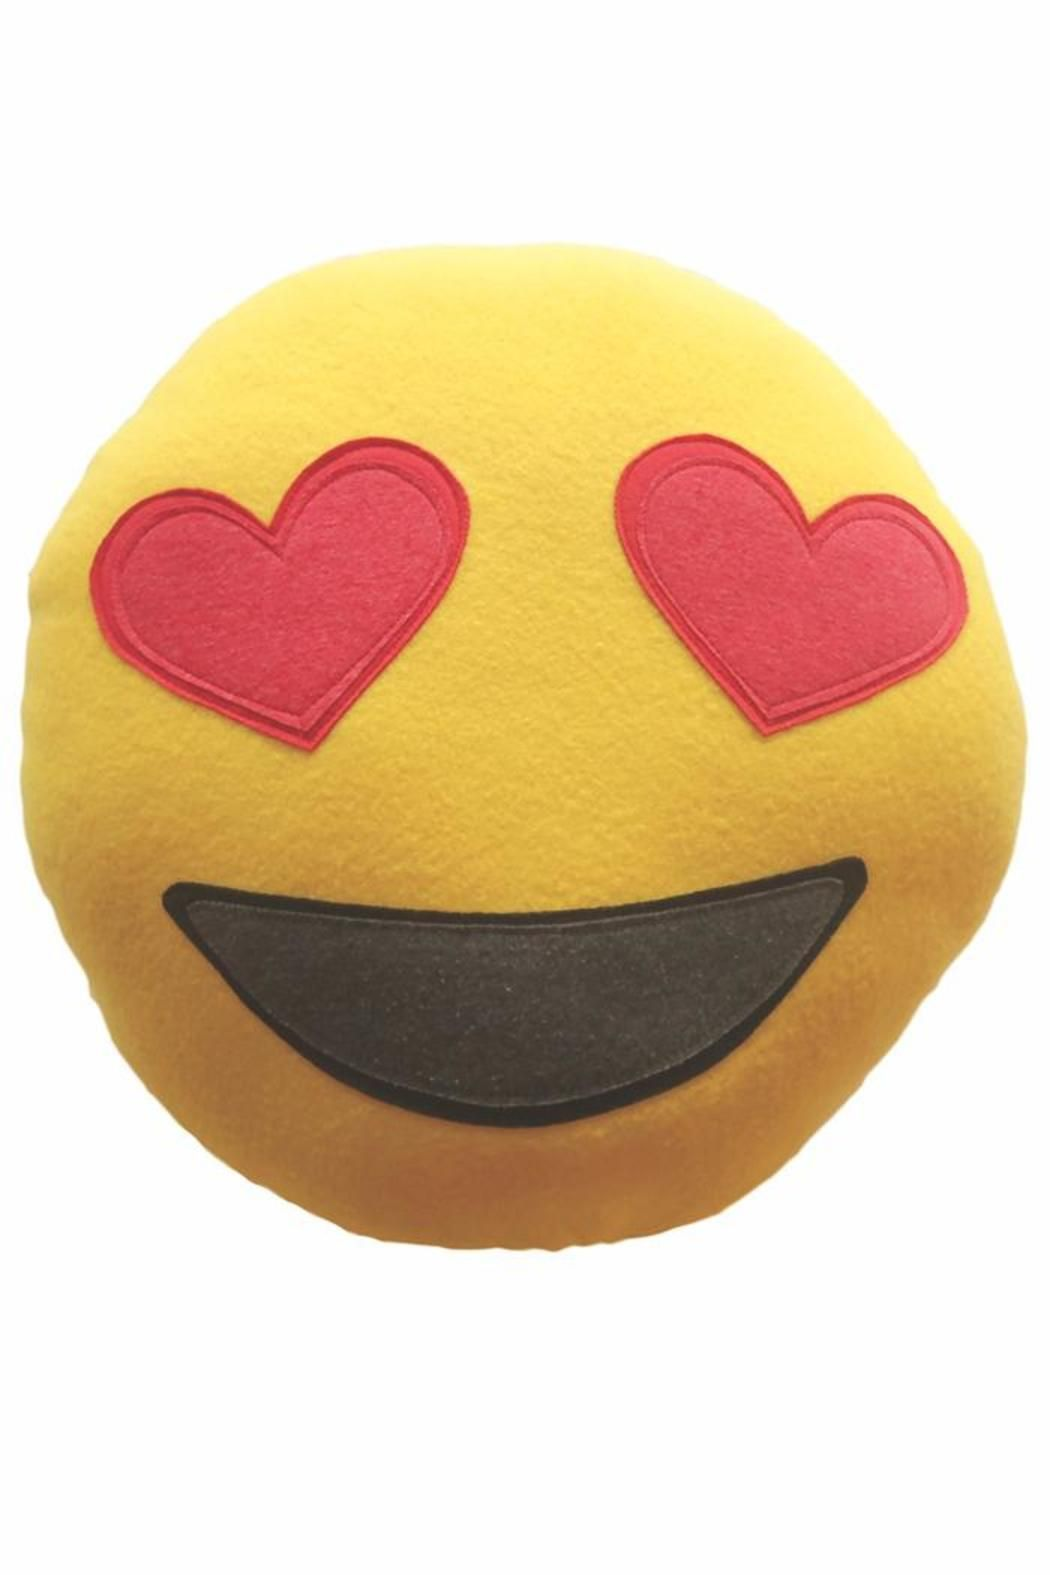 Float design studio smile emoji pillow emoji and layering